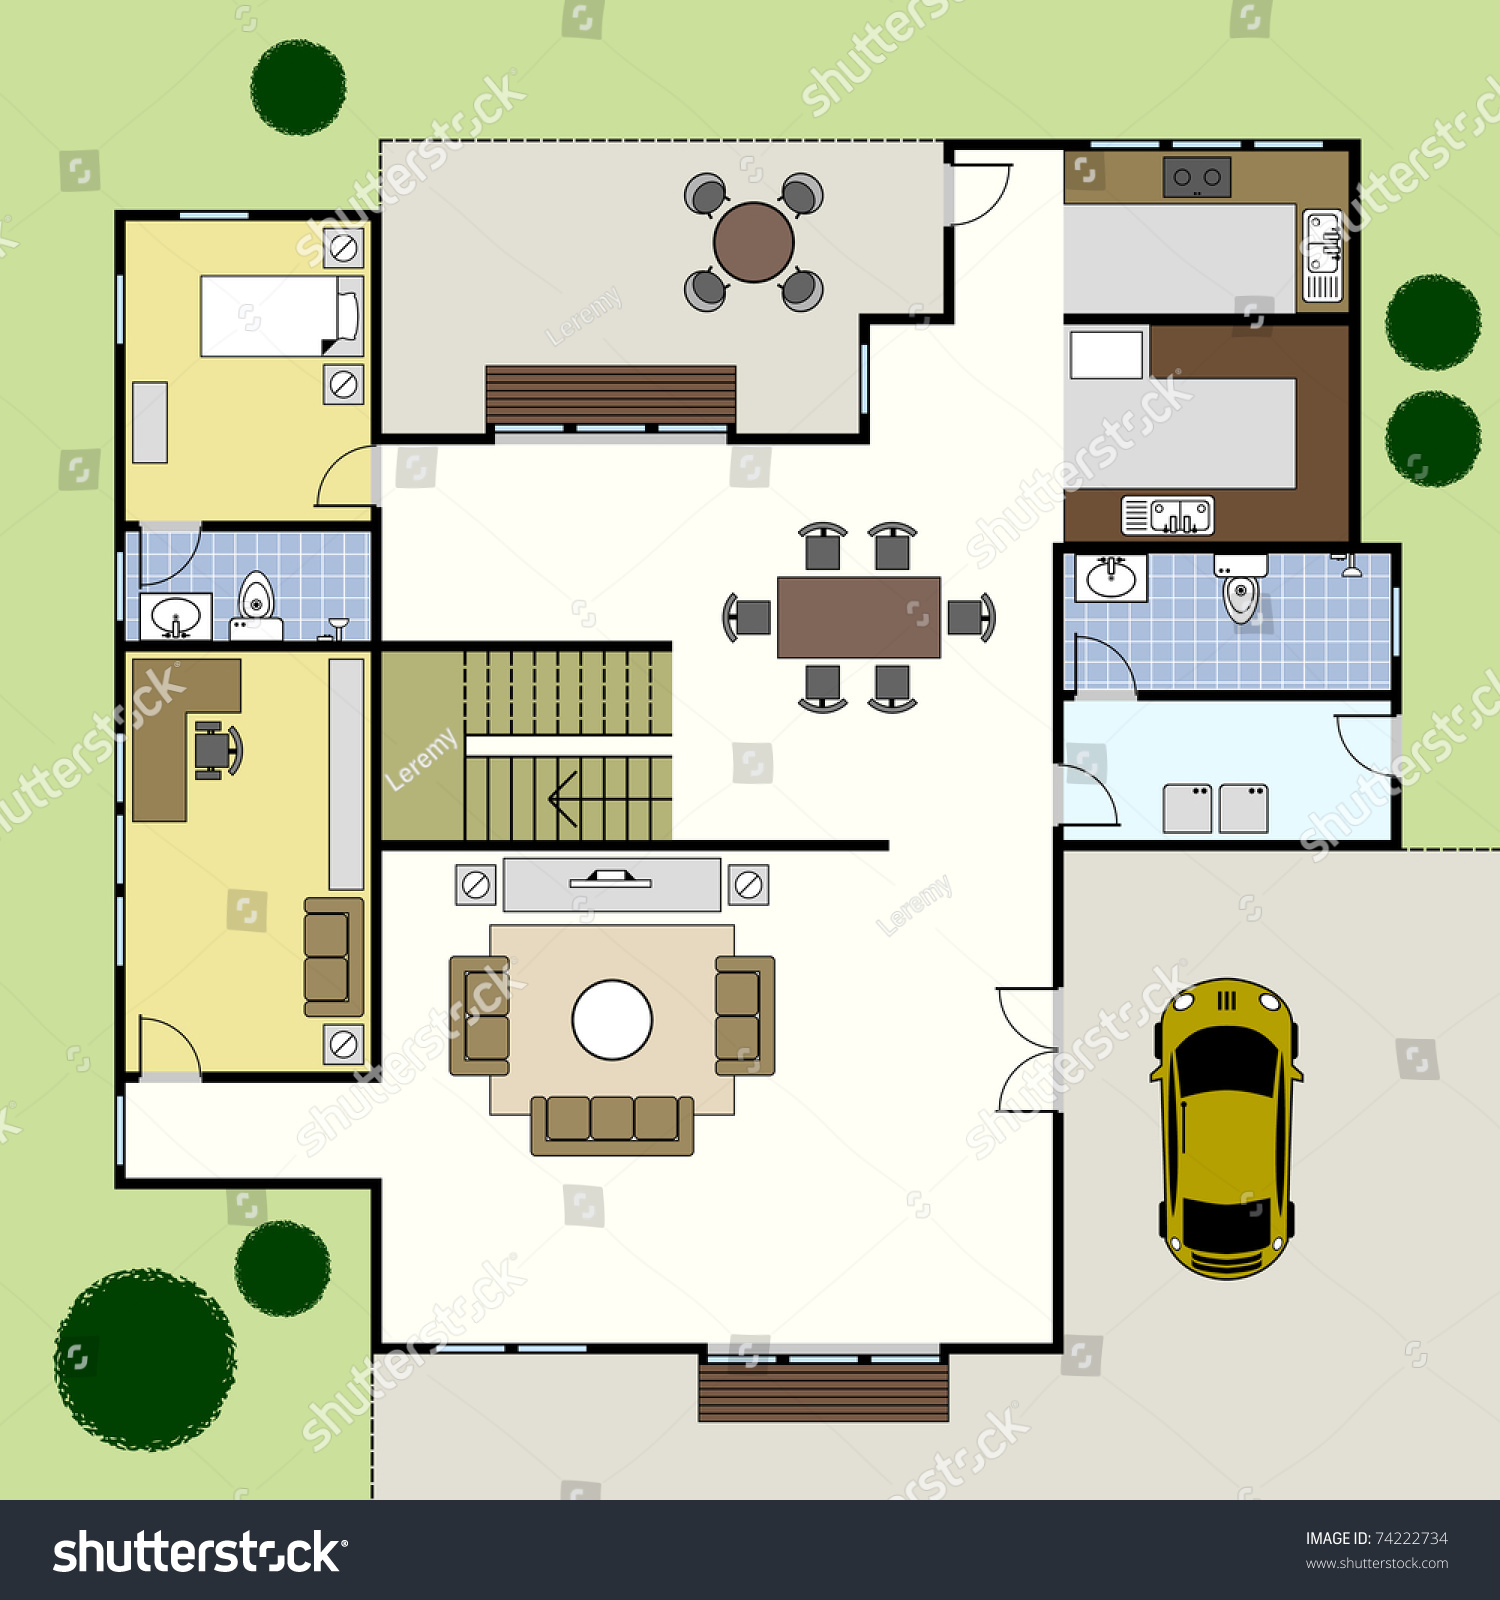 ground floor plan floorplan house home building architecture blueprint layout - House Building Plans